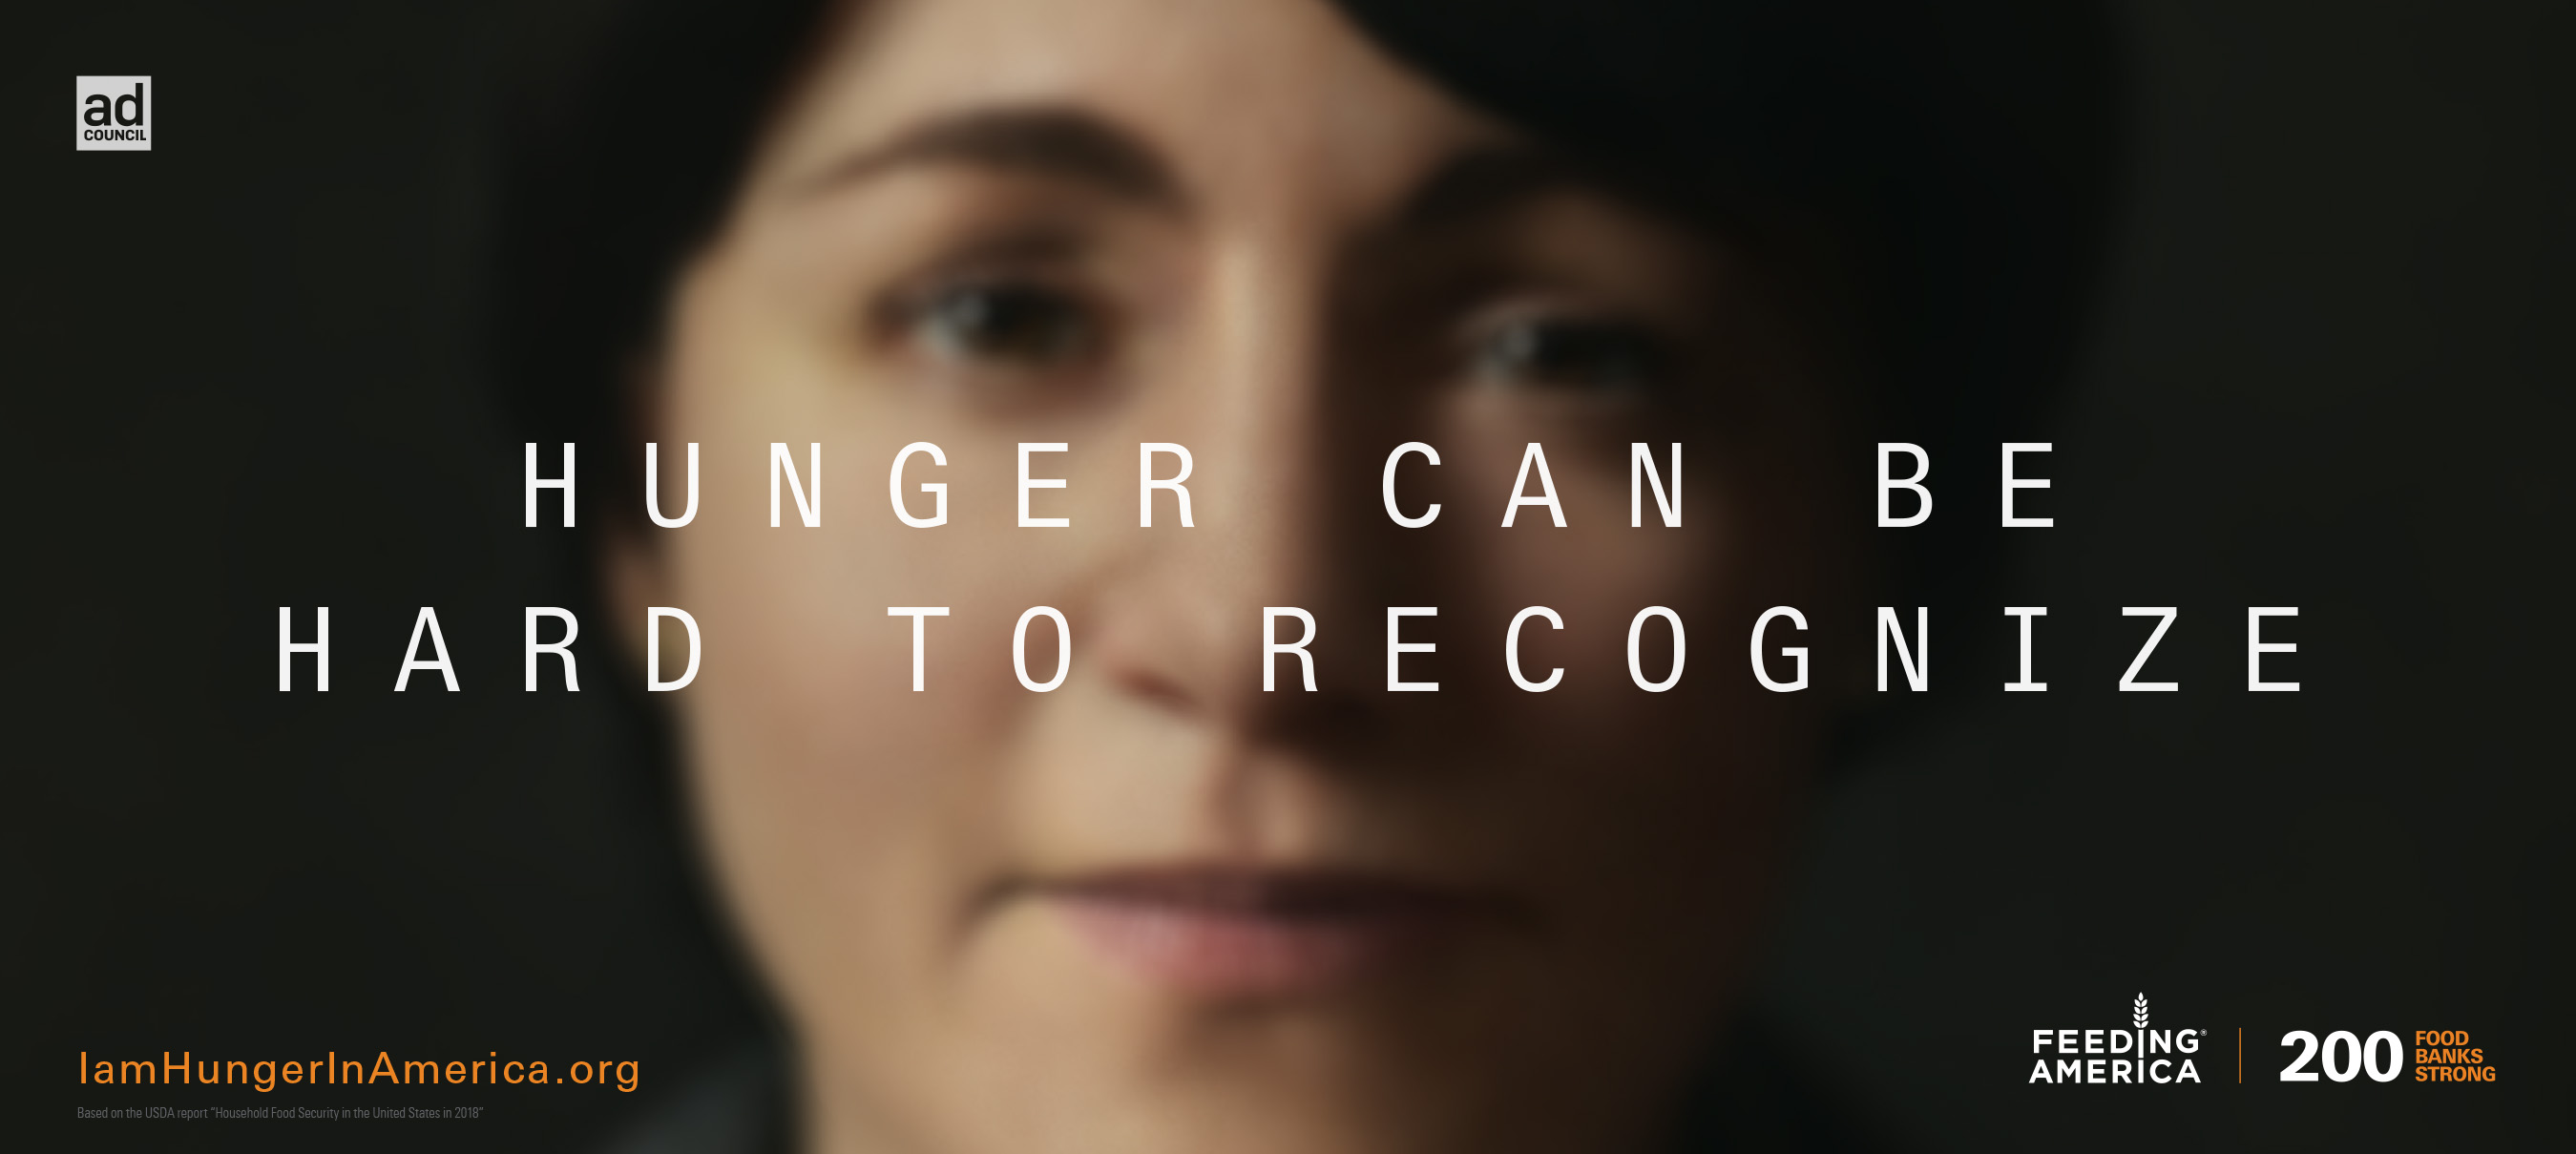 Hunger can be hard to recognize. Learn more at IAMHUNGERINAMERICA.ORG